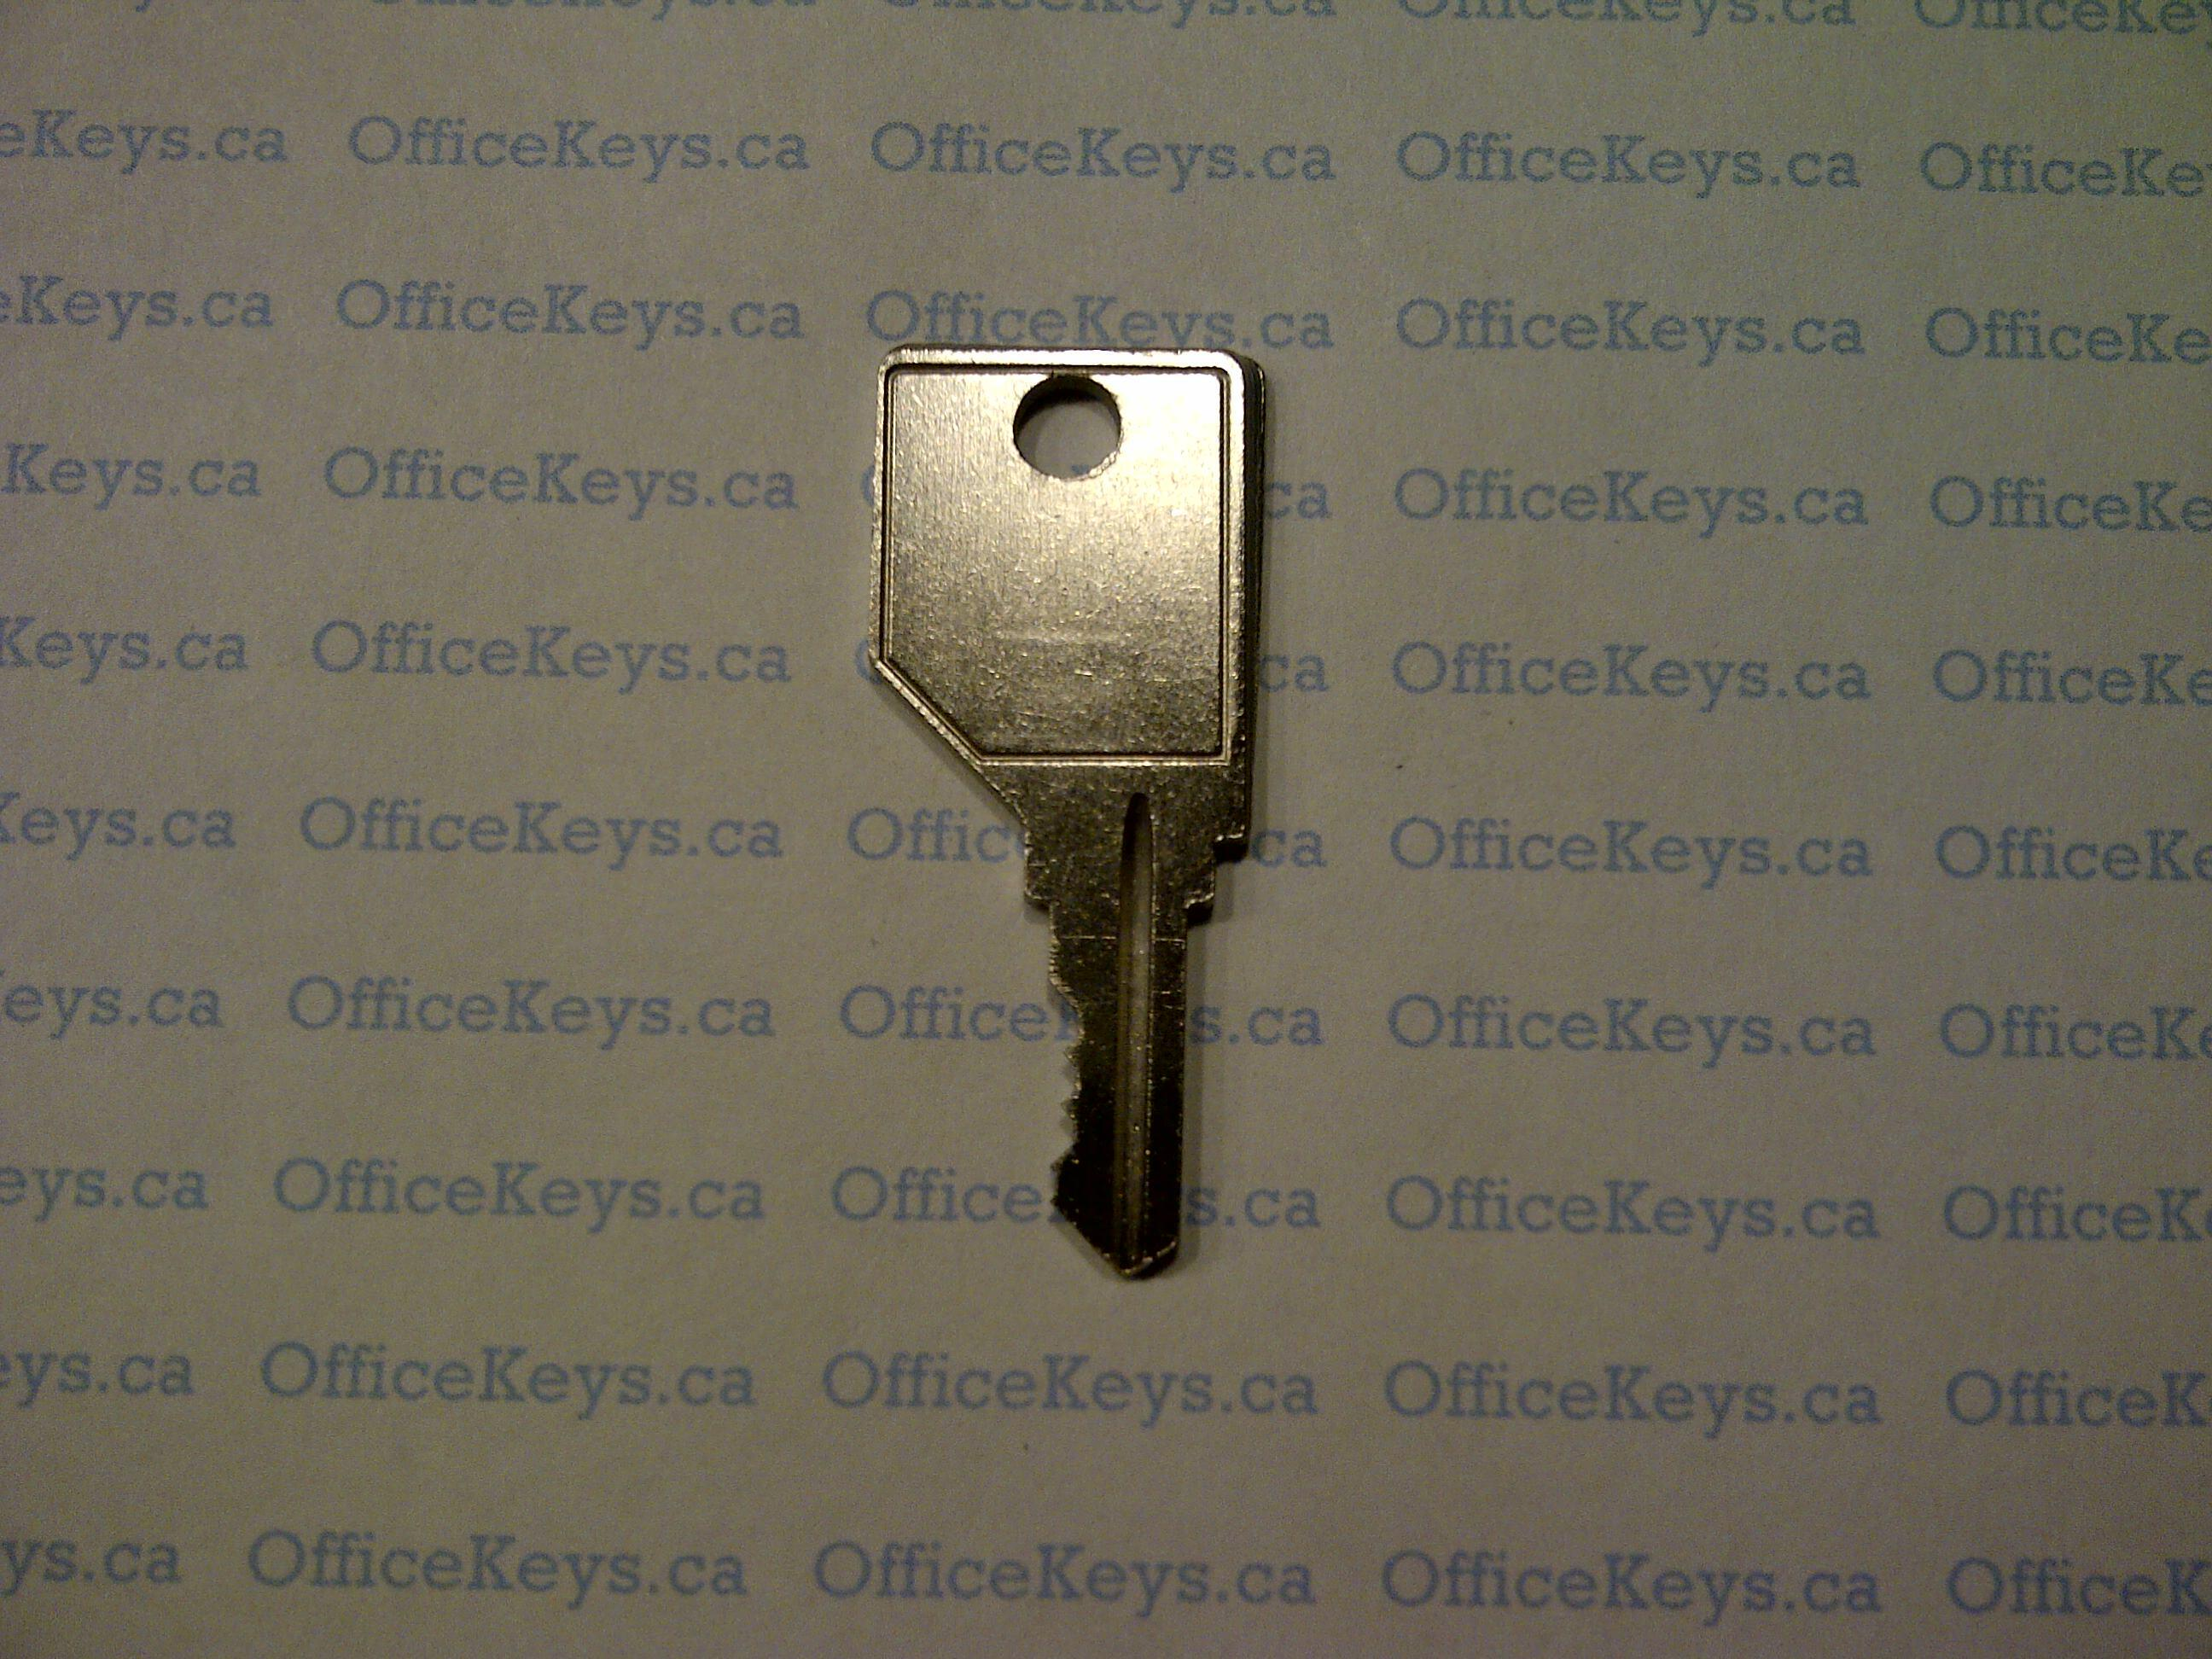 Pundra 901  1050 Series Code Keys  OfficeKeysca